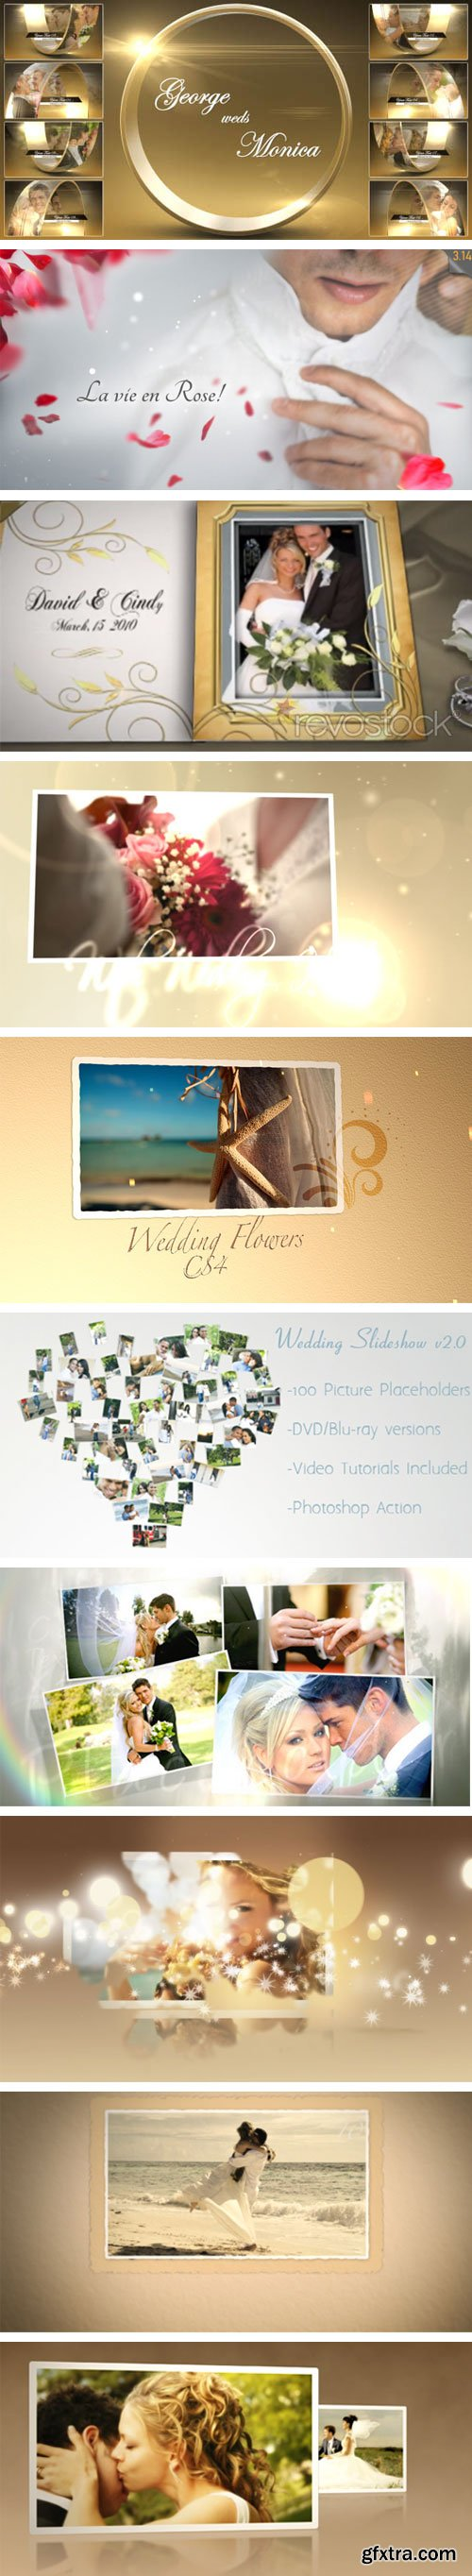 VideoHive - 10 Template Wedding Project After Effect Bundle